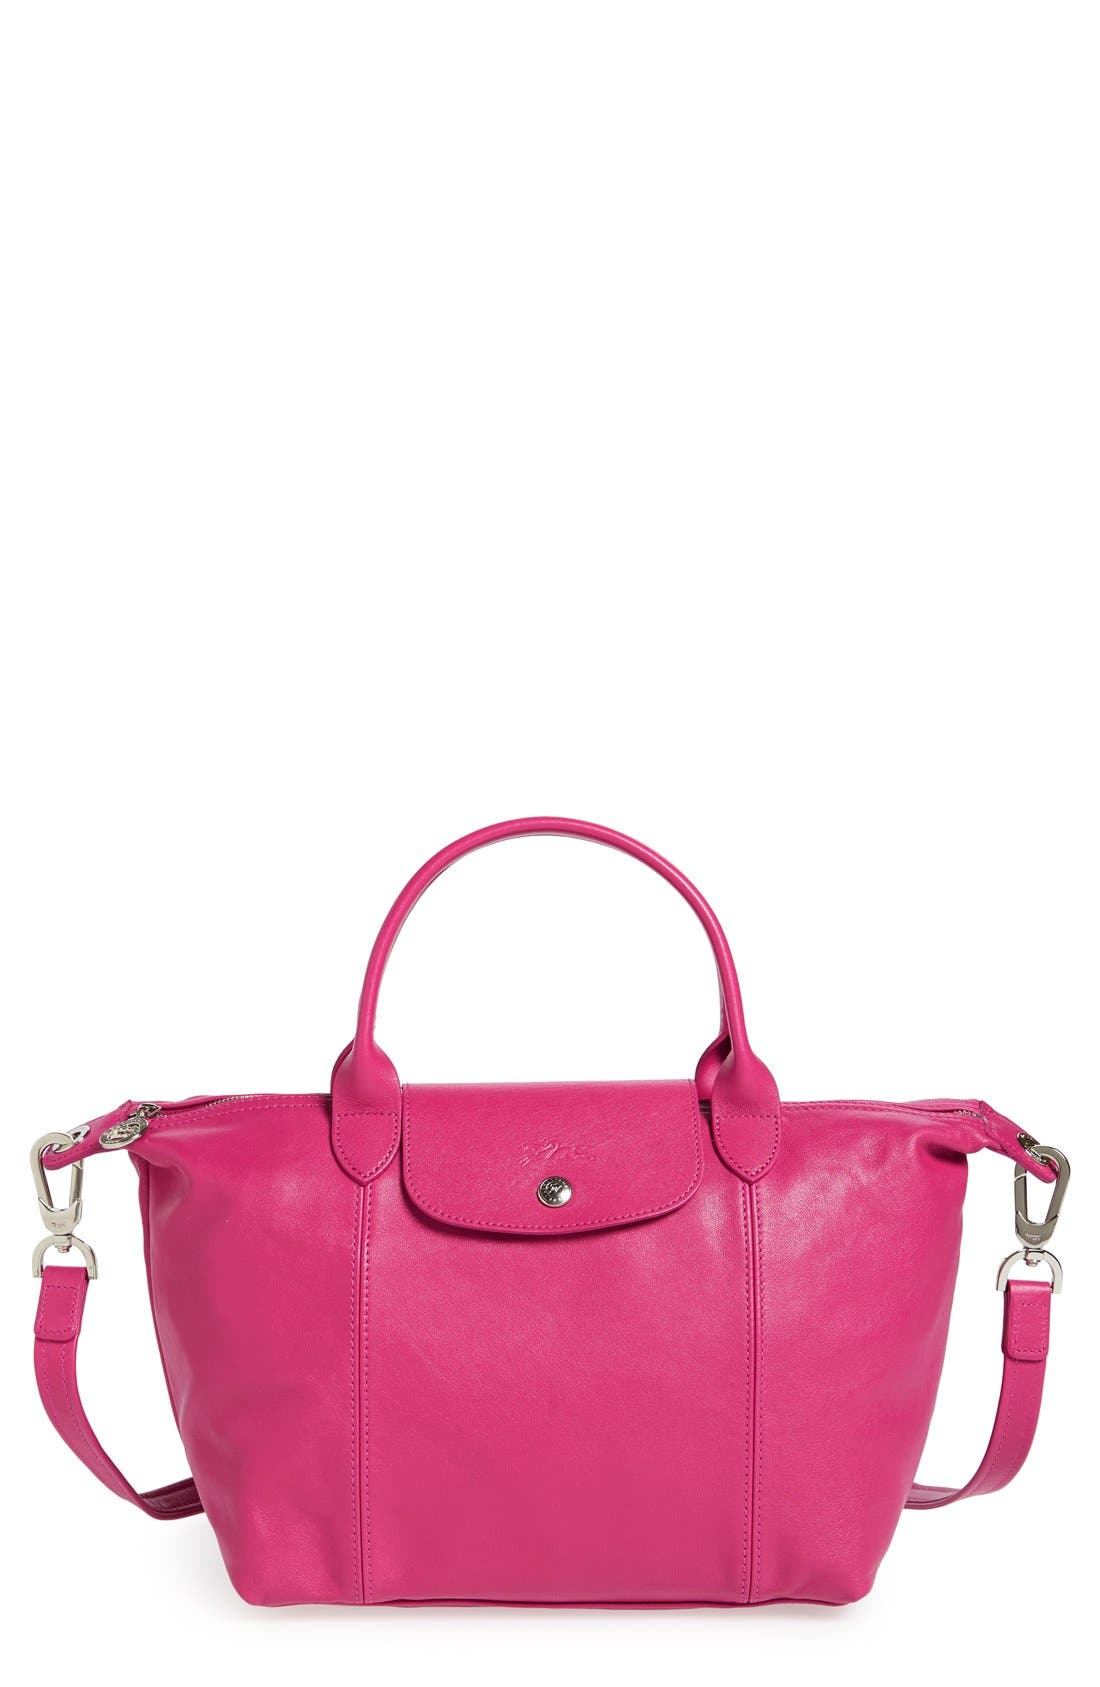 Small 'Le Pliage Cuir' Leather Top Handle Tote,                             Main thumbnail 22, color,